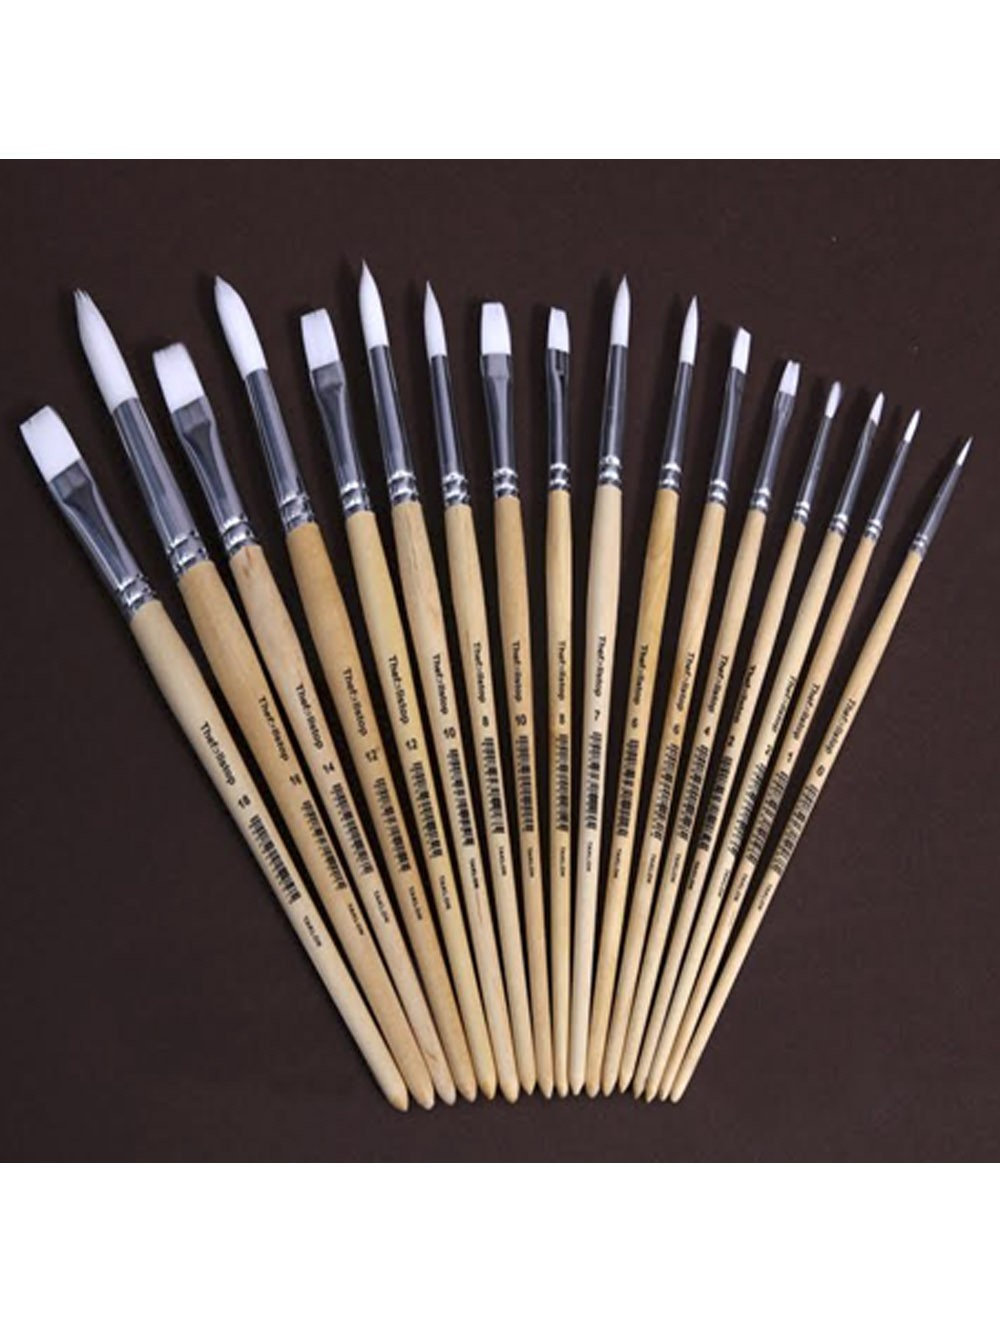 THEF:;LLSTOP WHITE TAKLON BRUSHES - FLAT (SIZES NO. 2-18)